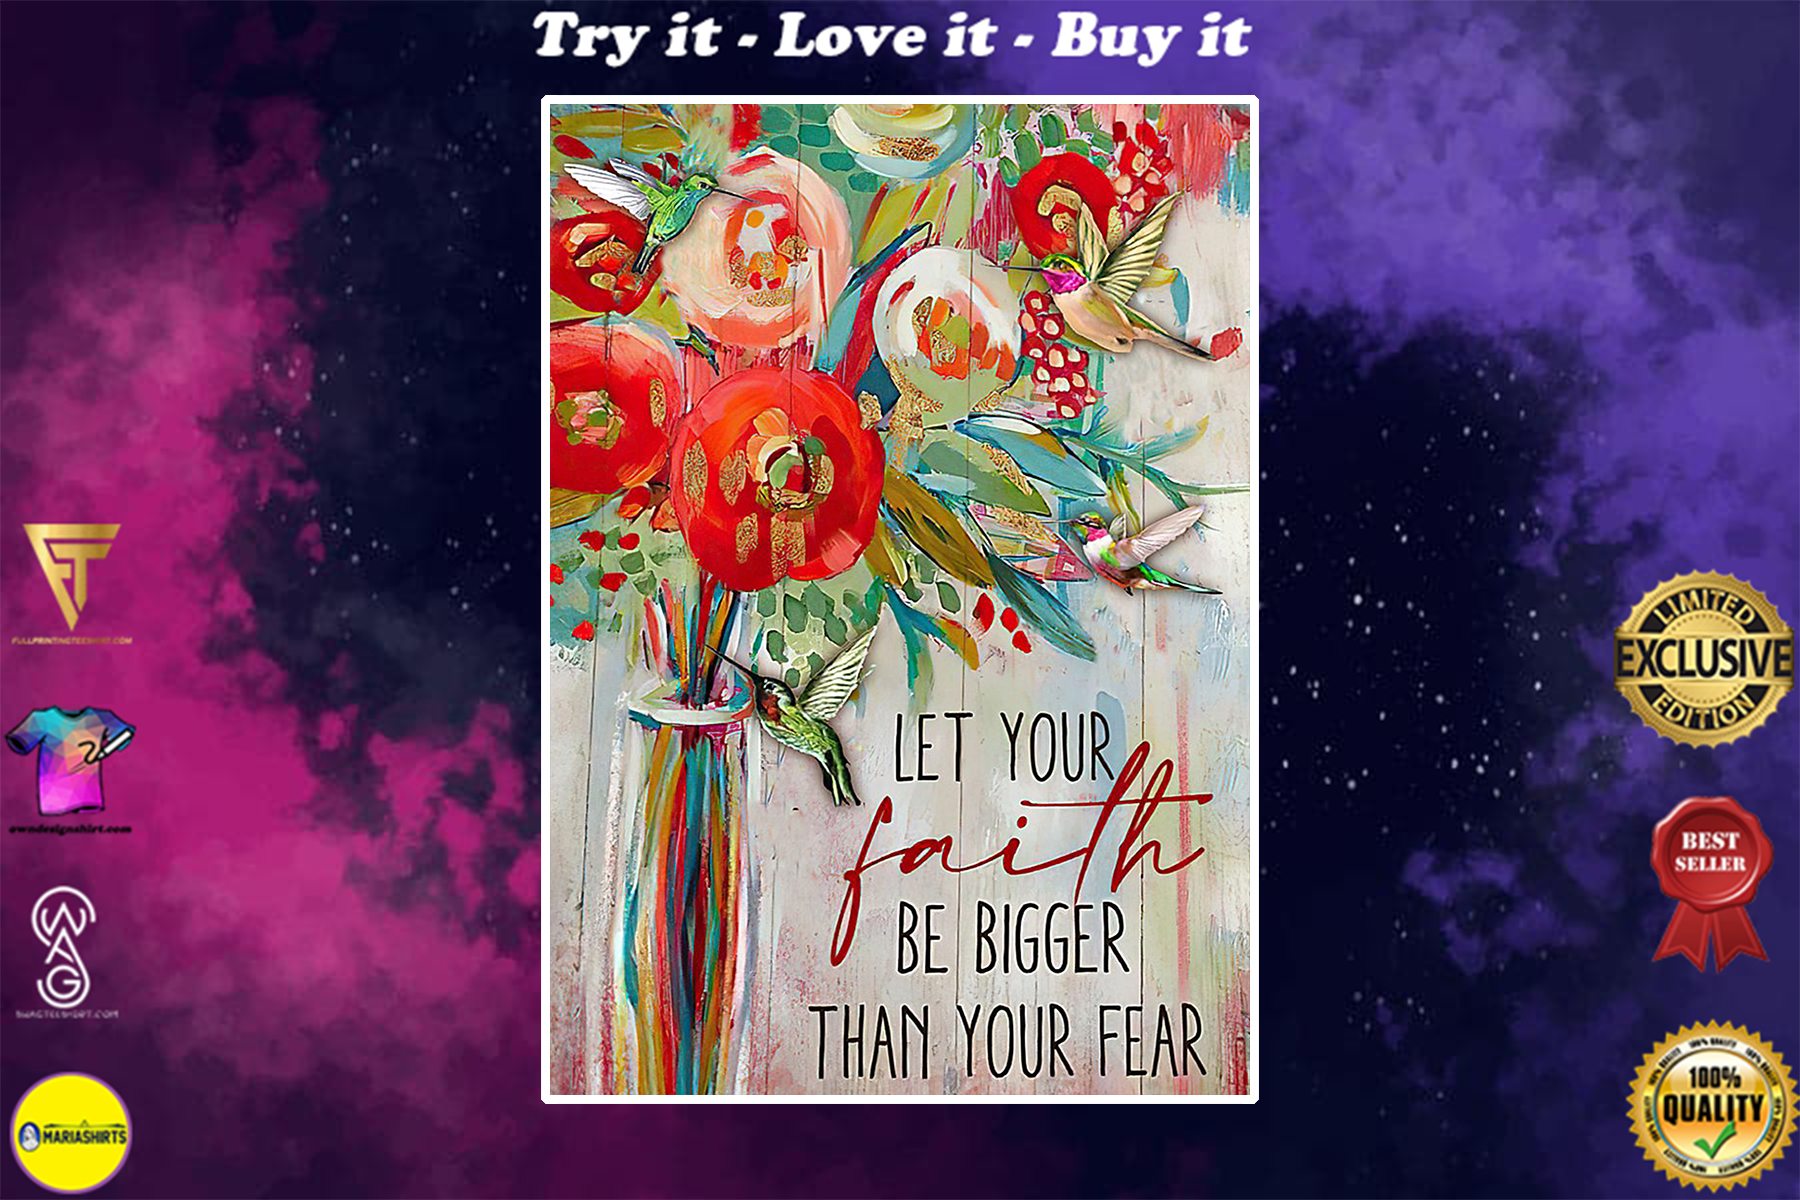 let your faith be bigger than your fear watercolor poster